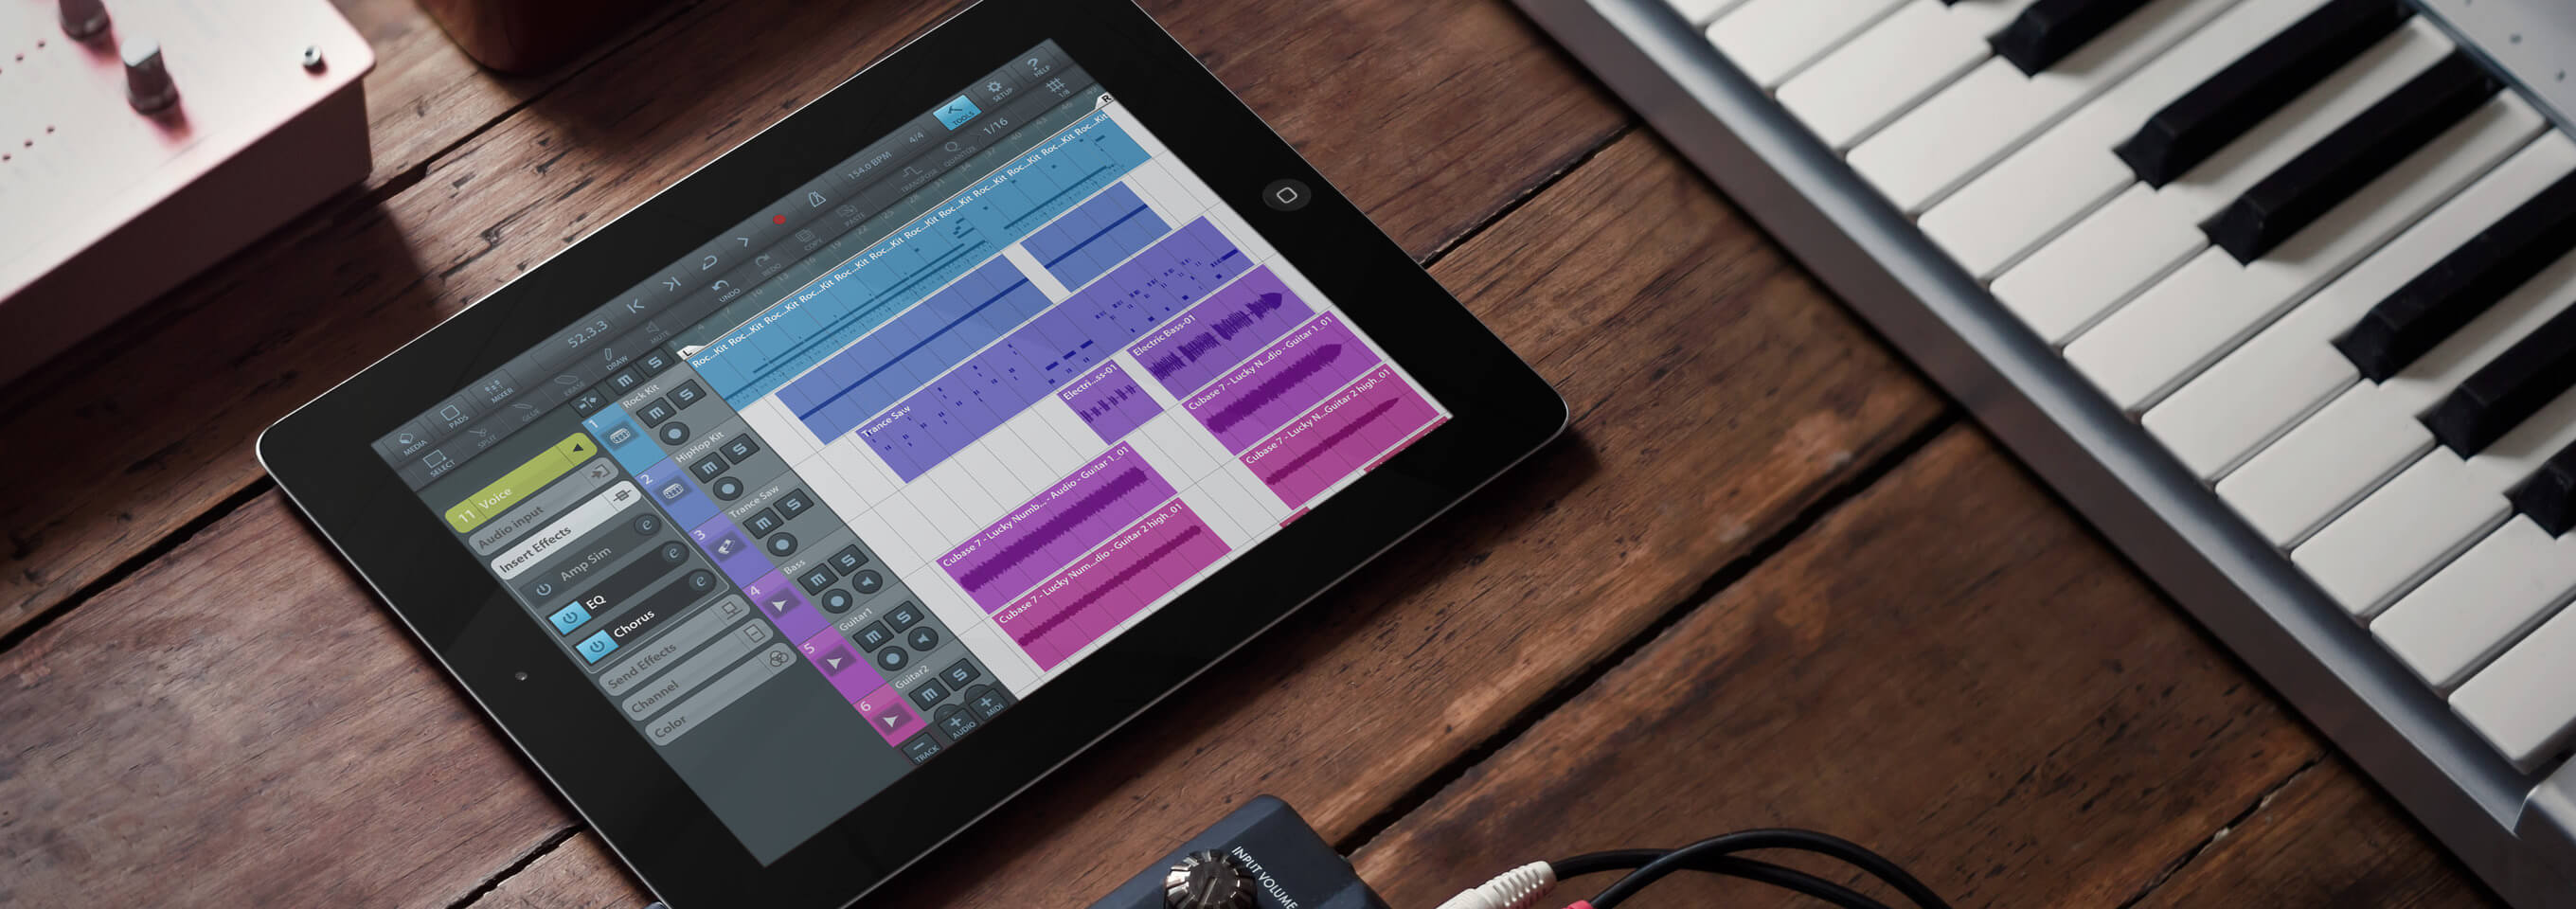 iPad Mockup on a Table Next to a Keyboard Featuring a Music Recording App in its Screen